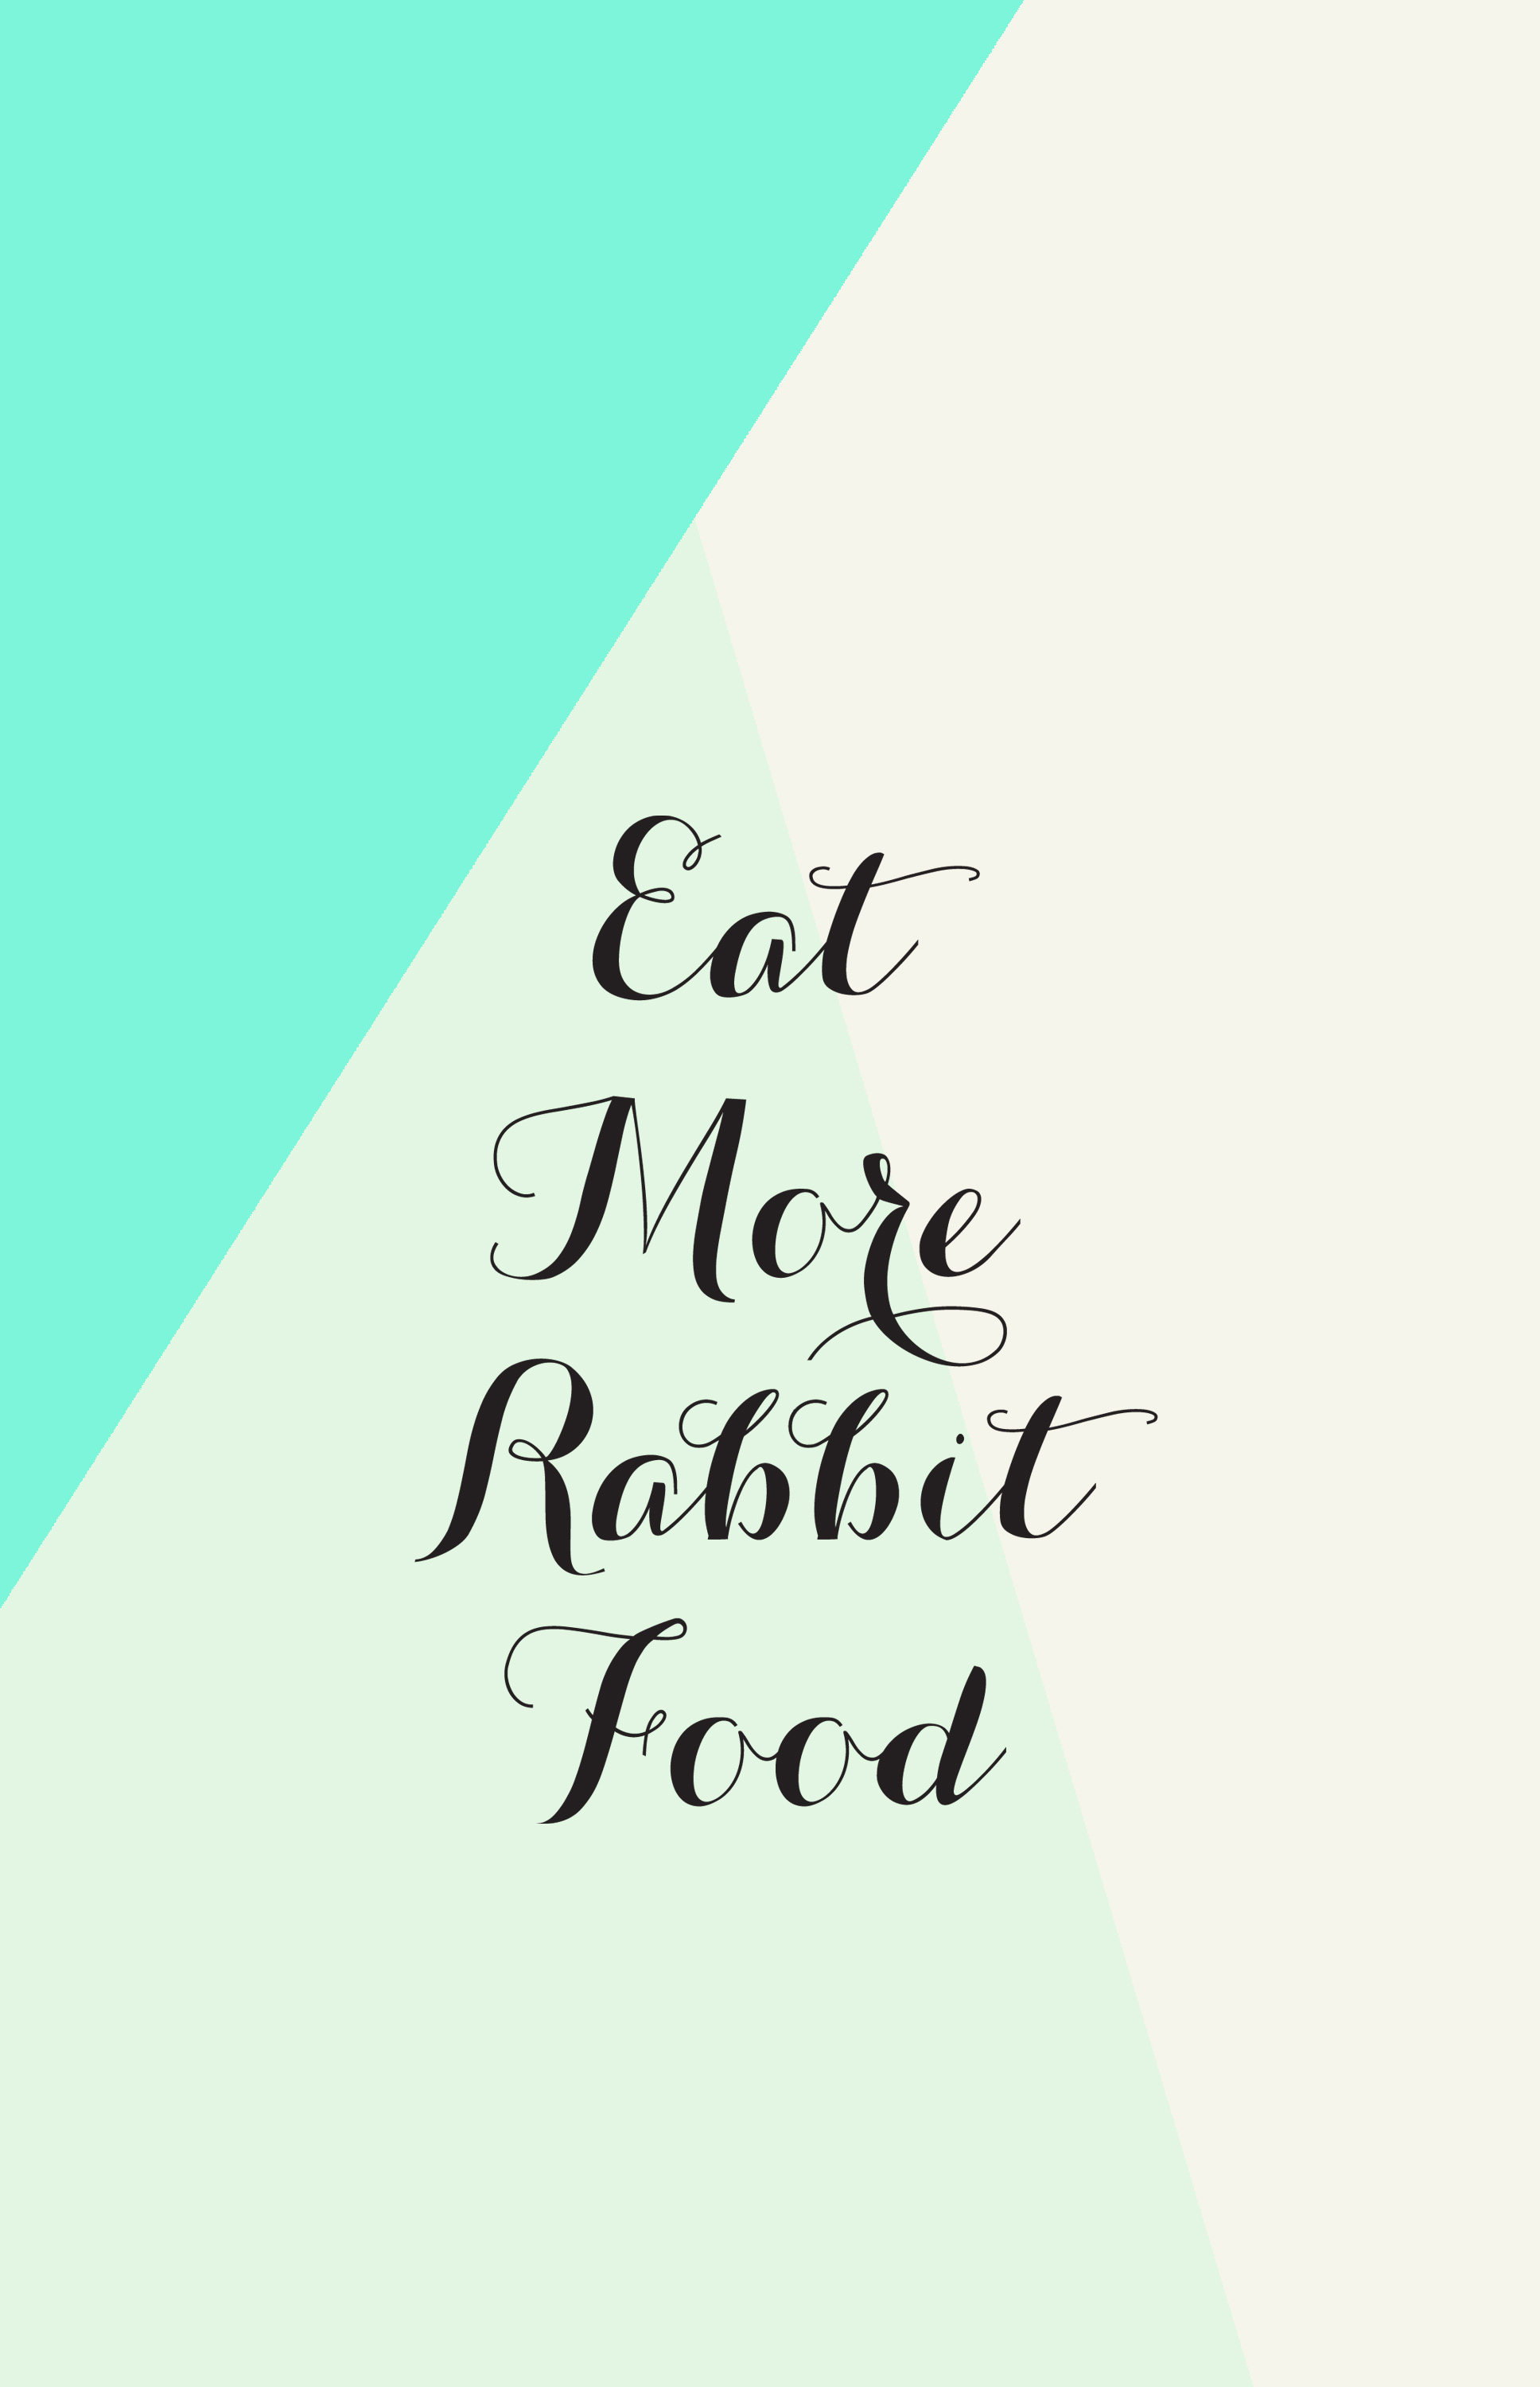 Floral Inspirational Quote Wallpaper Motivational Wallpapers 01 Rabbit Food For My Bunny Teeth